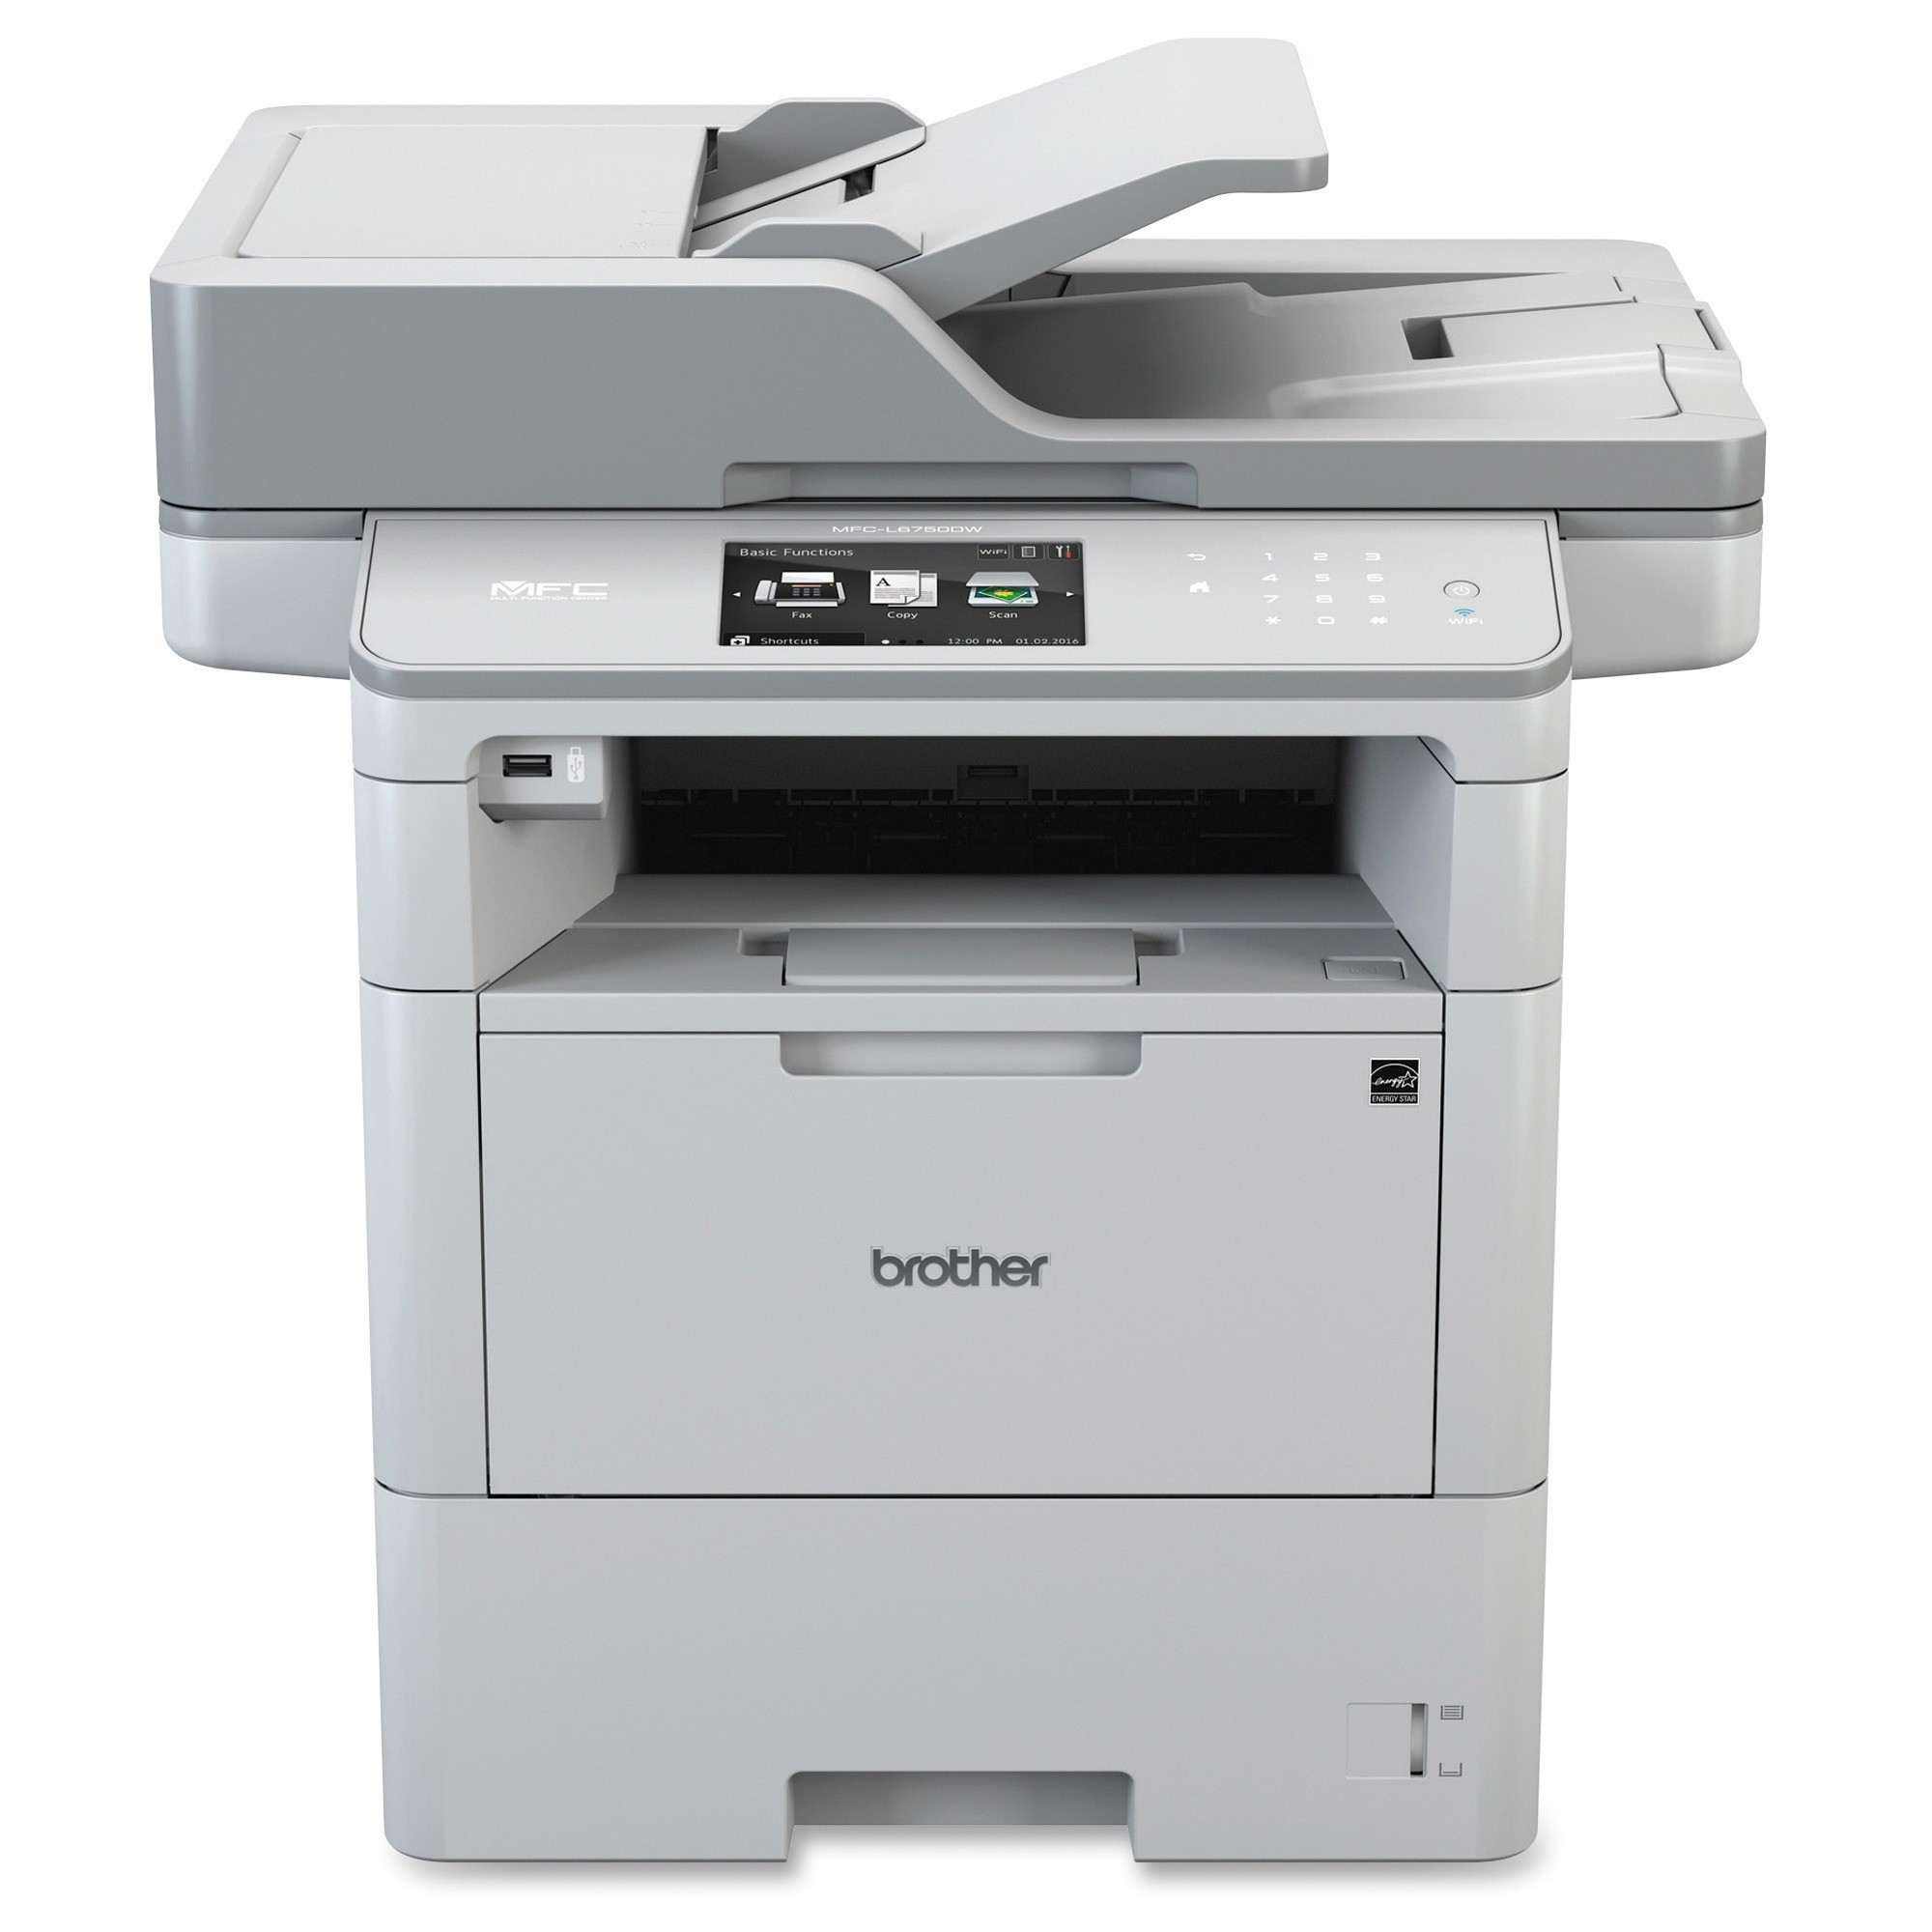 Brother MFC-L6750DW Laser Multifunction Printer Monochrome (Refurbished) by Brother